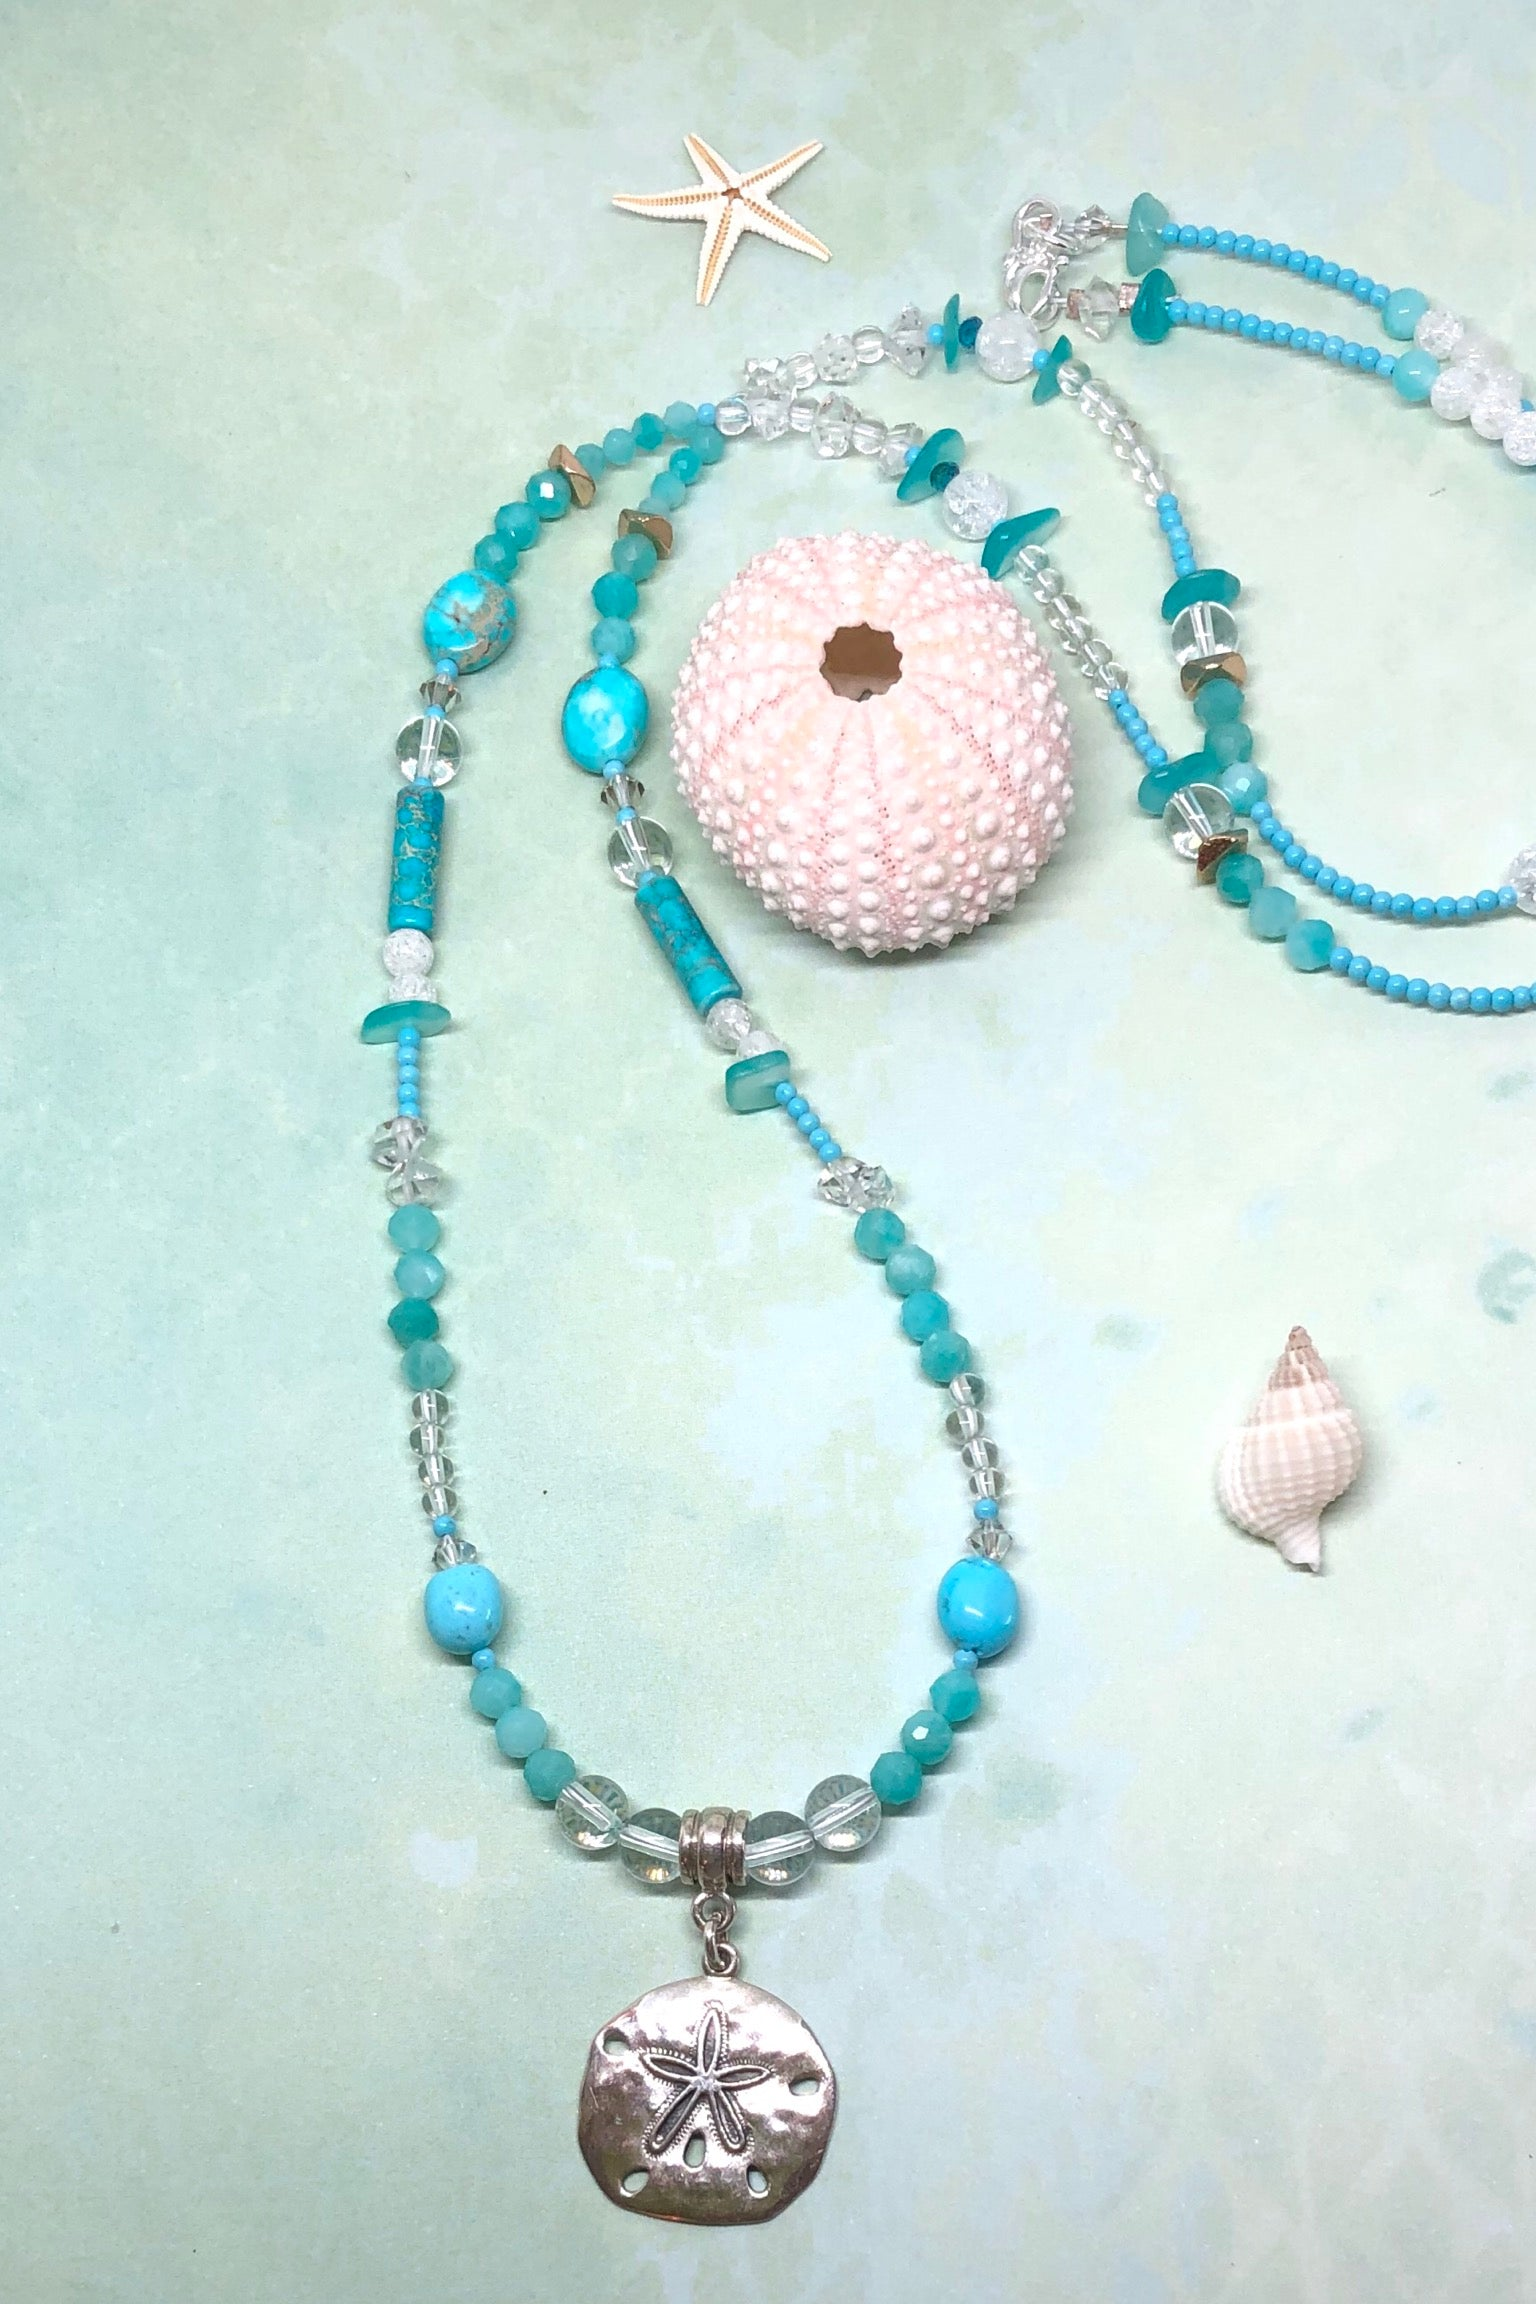 This necklace is a one off piece, the stones are all natural semi precious gems